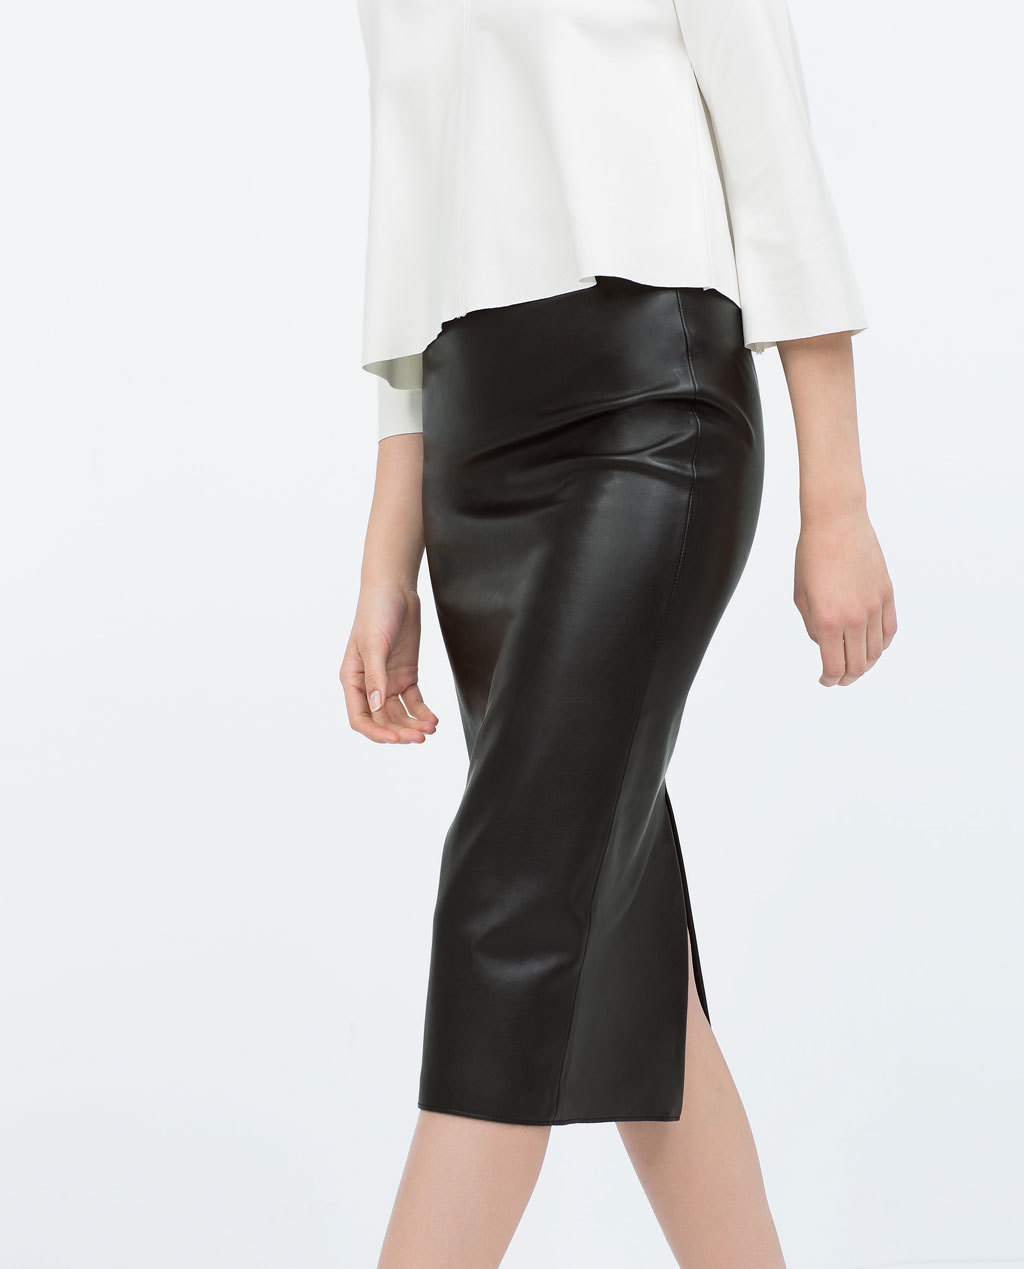 Faux Leather Midi Pencil Skirt - length: below the knee; pattern: plain; style: pencil; fit: tailored/fitted; waist: mid/regular rise; predominant colour: black; occasions: evening, work, creative work; fibres: polyester/polyamide - 100%; texture group: leather; pattern type: fabric; season: s/s 2015